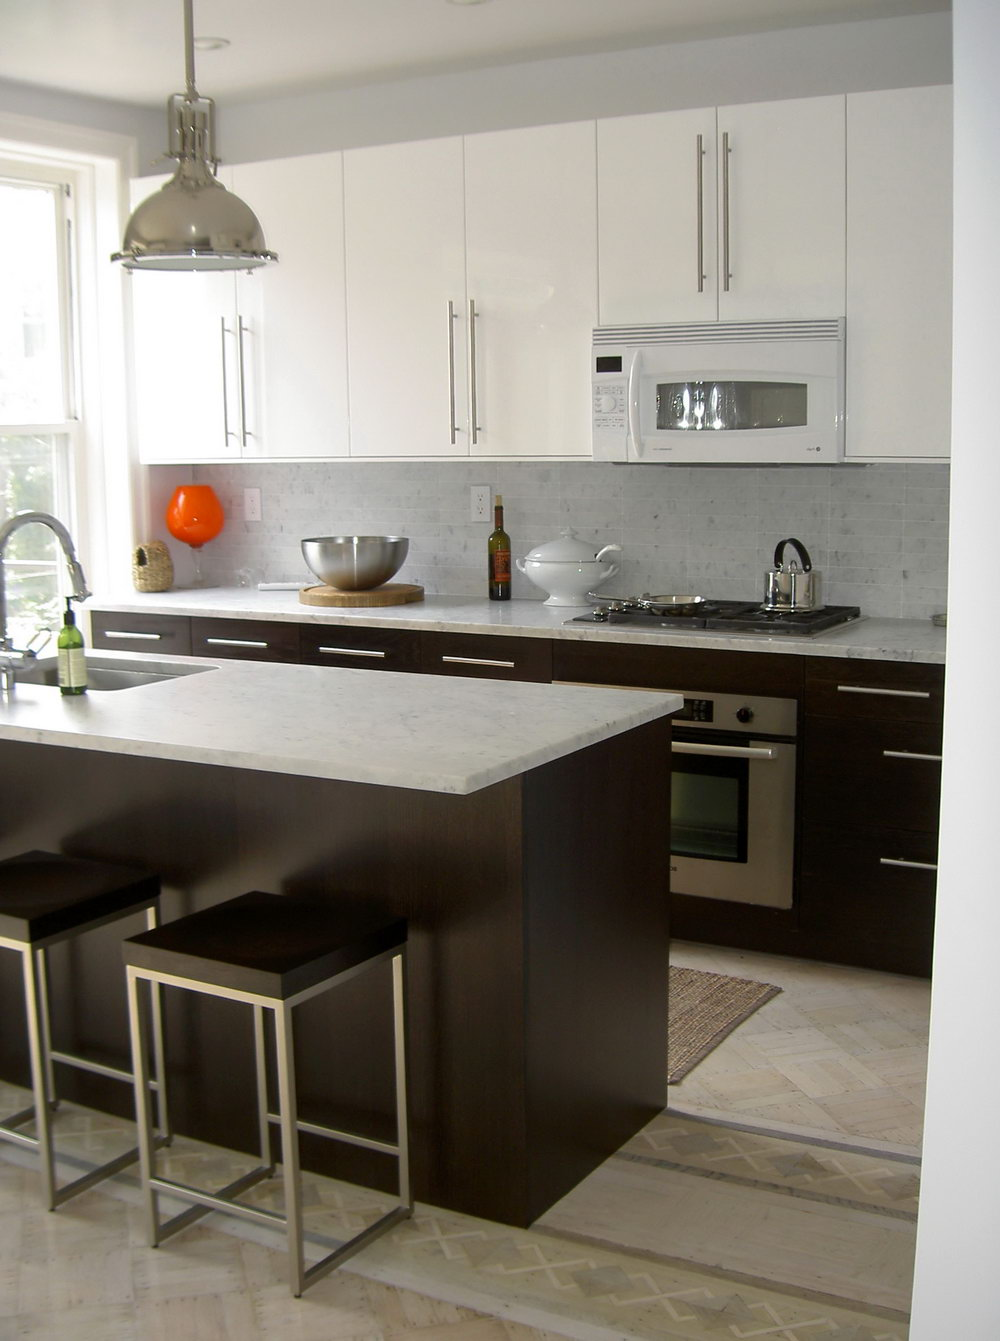 Kitchen Cabinet Prices Per Linear Foot